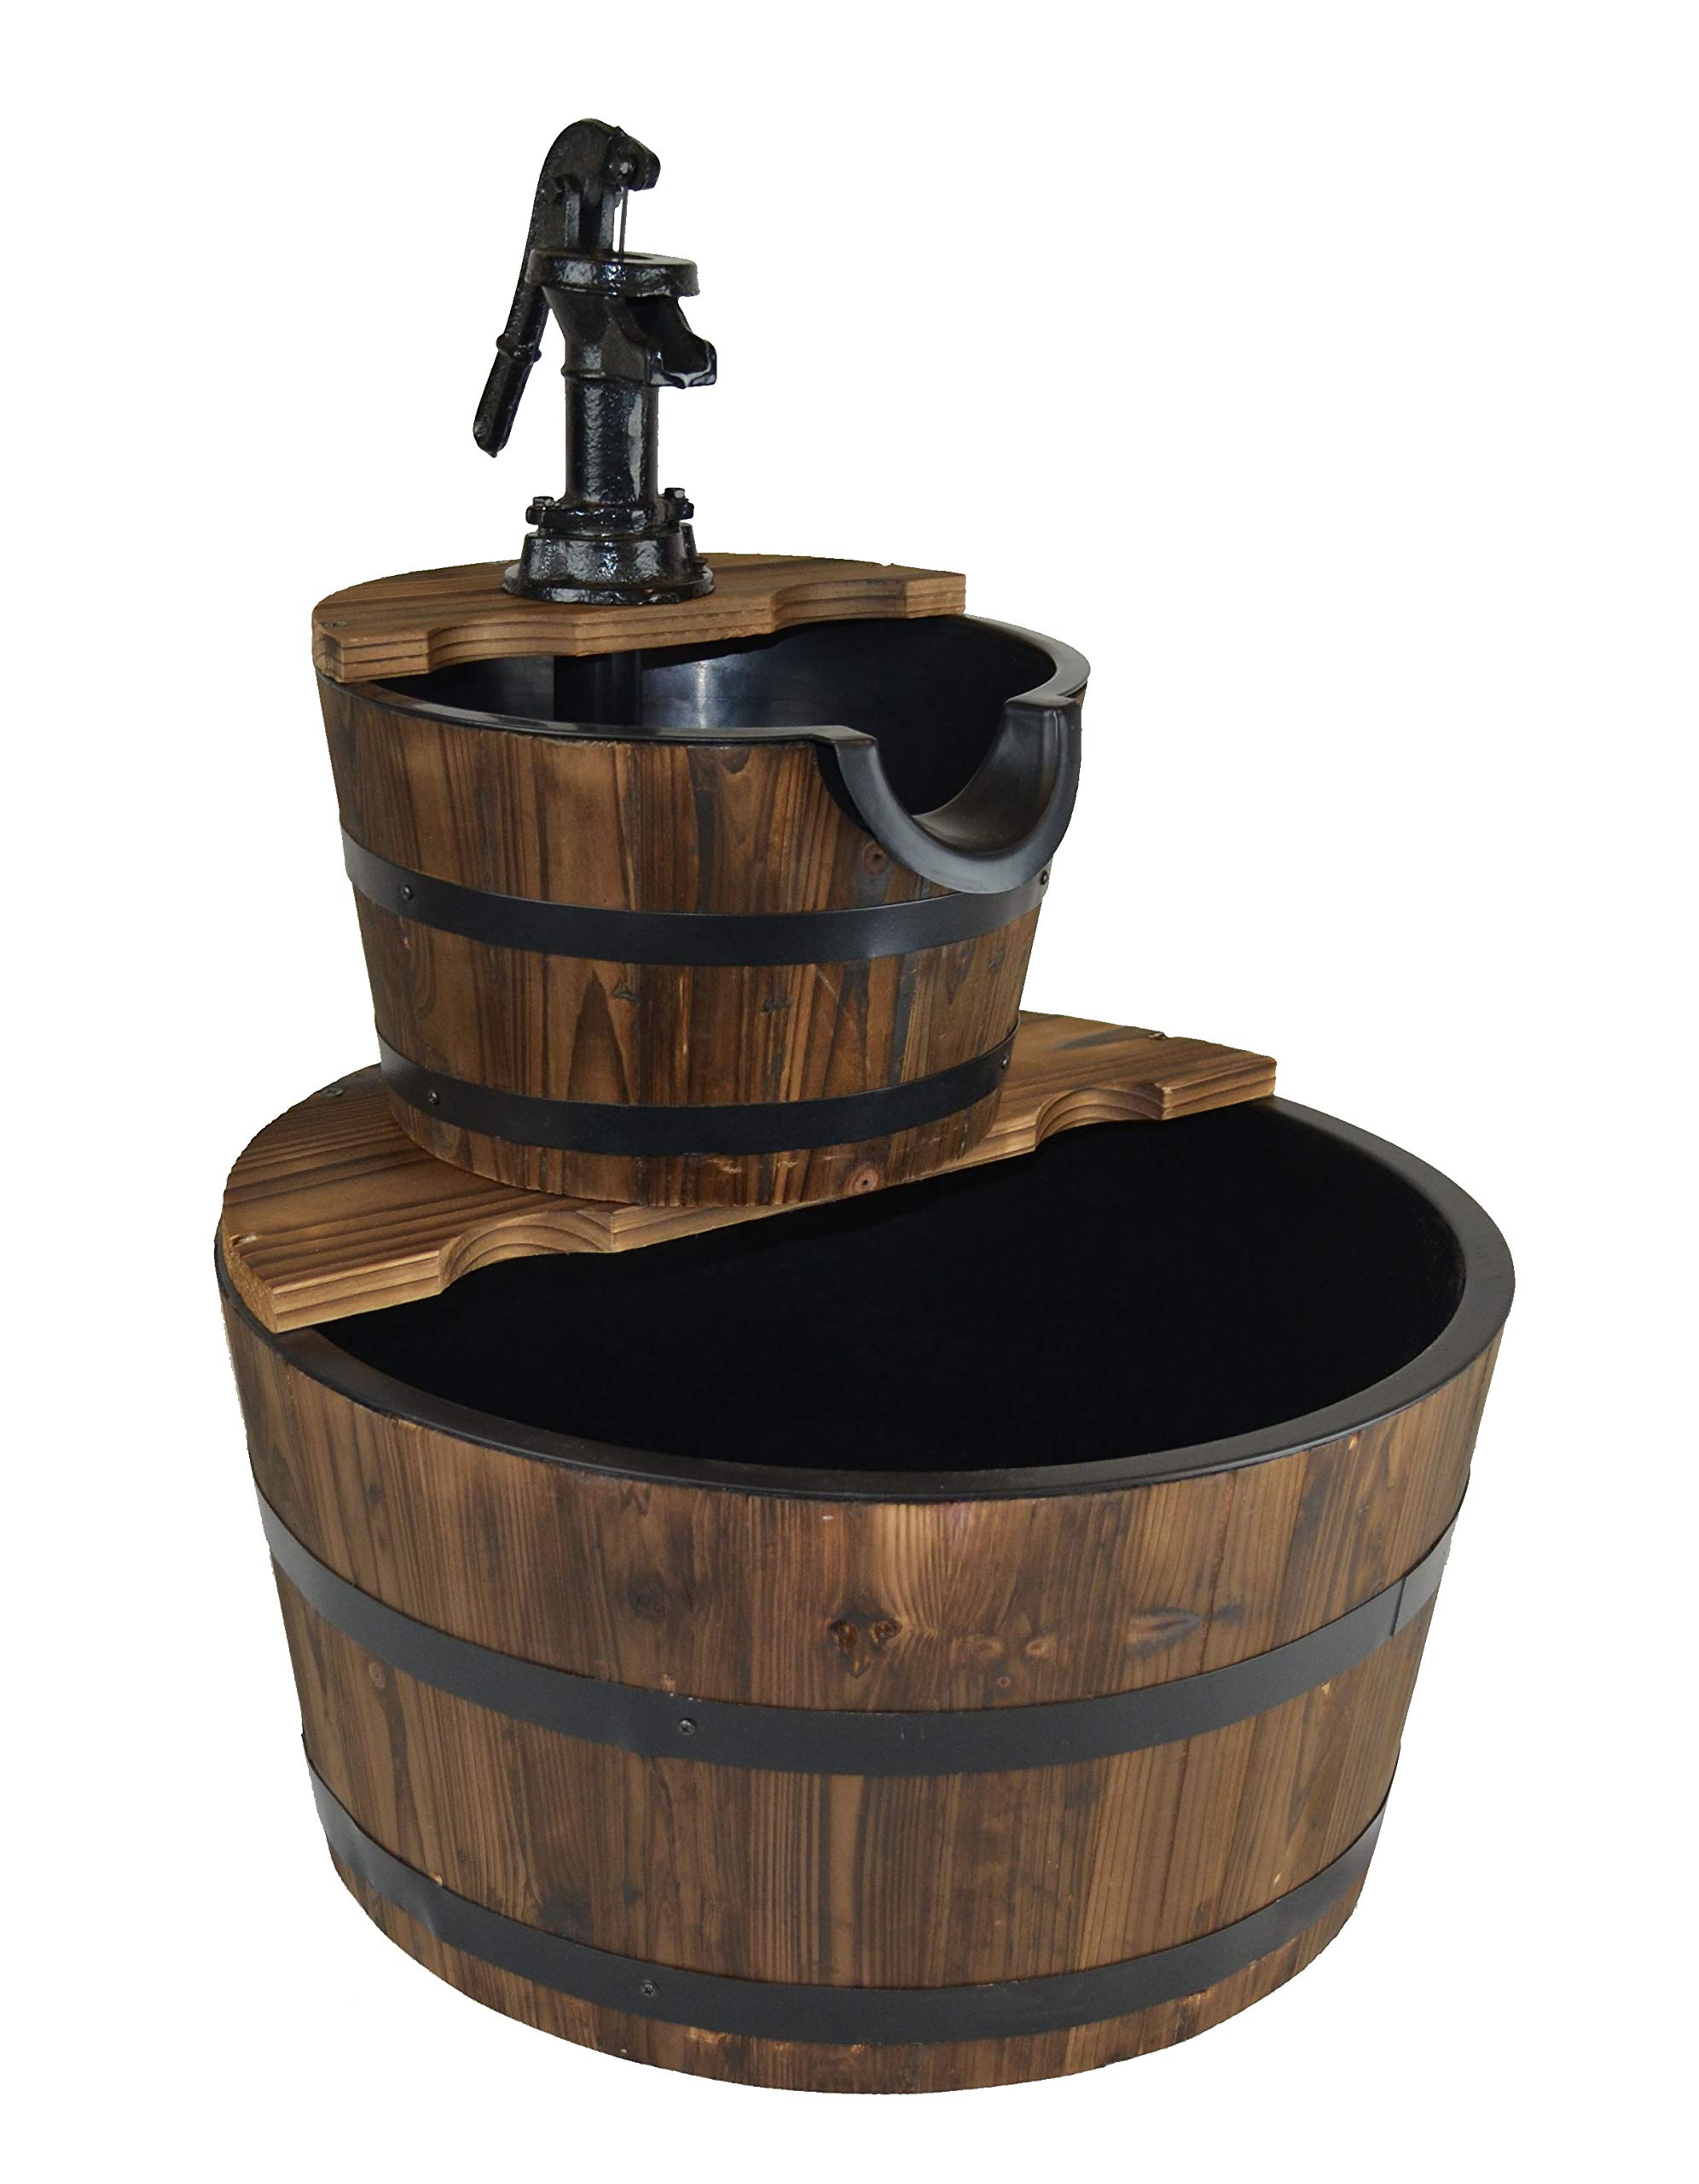 PSW - Water Fountains Water Fountains Outdoor Wood Barrel with Pump - Medium Size Garden Water Fountain Product SKU: PL50066